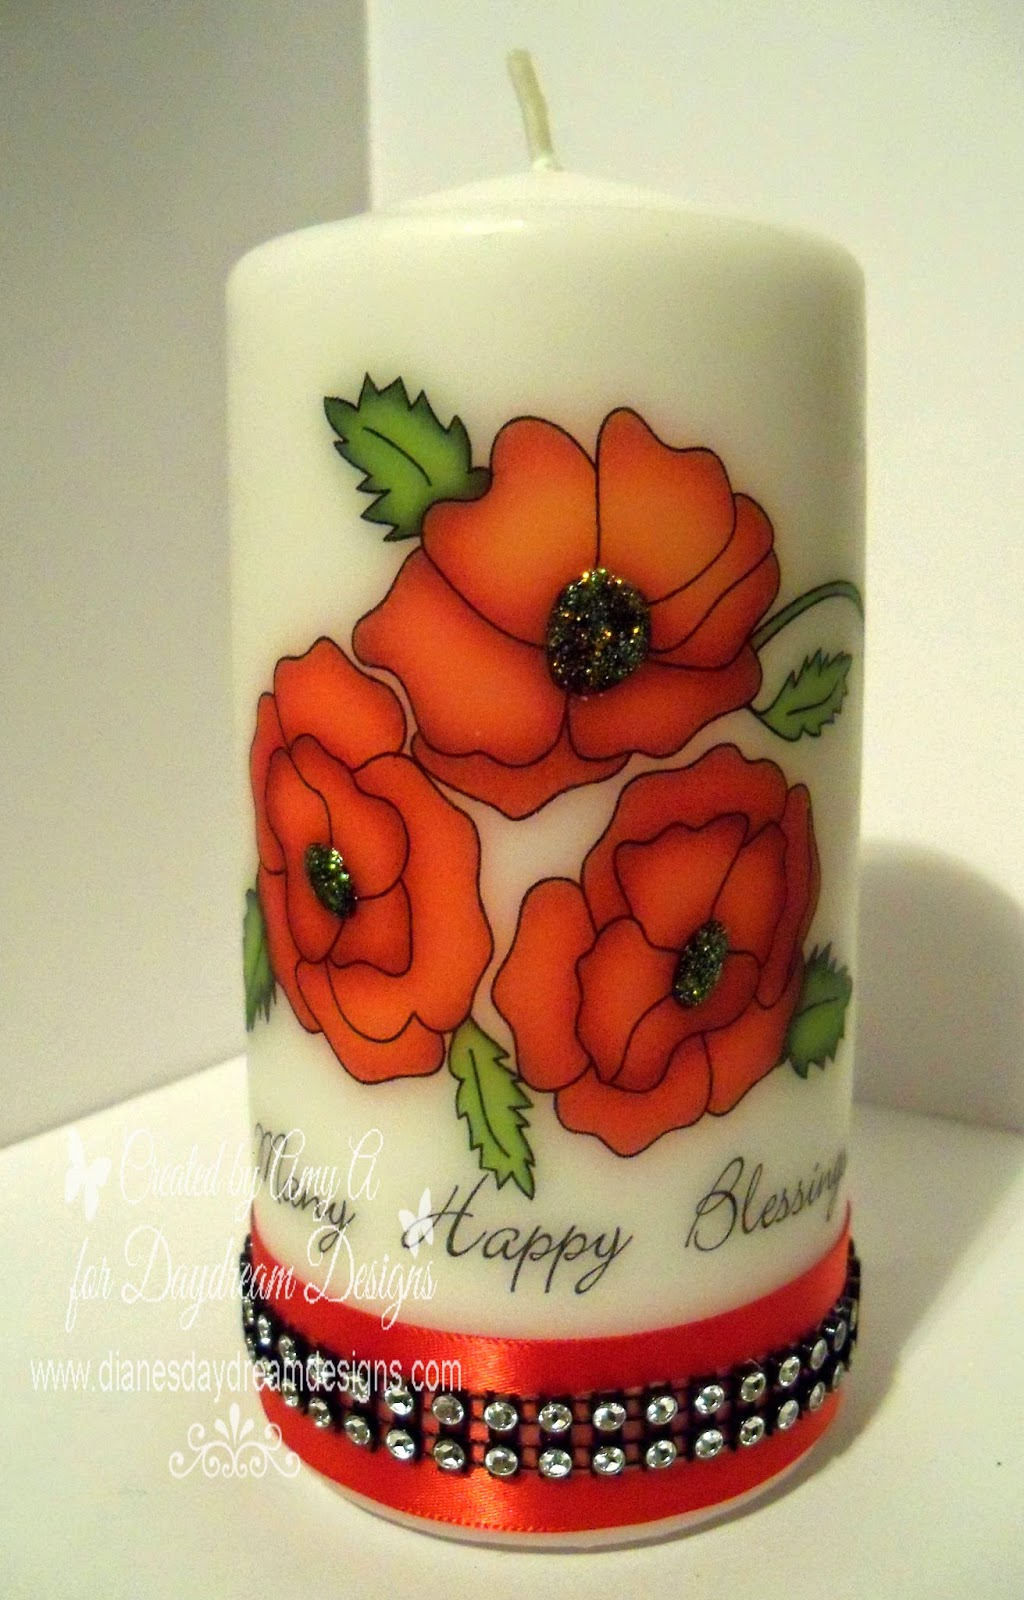 http://www.dianesdaydreamdesigns.com/store/p954/DD-Poppies_for_You_.html